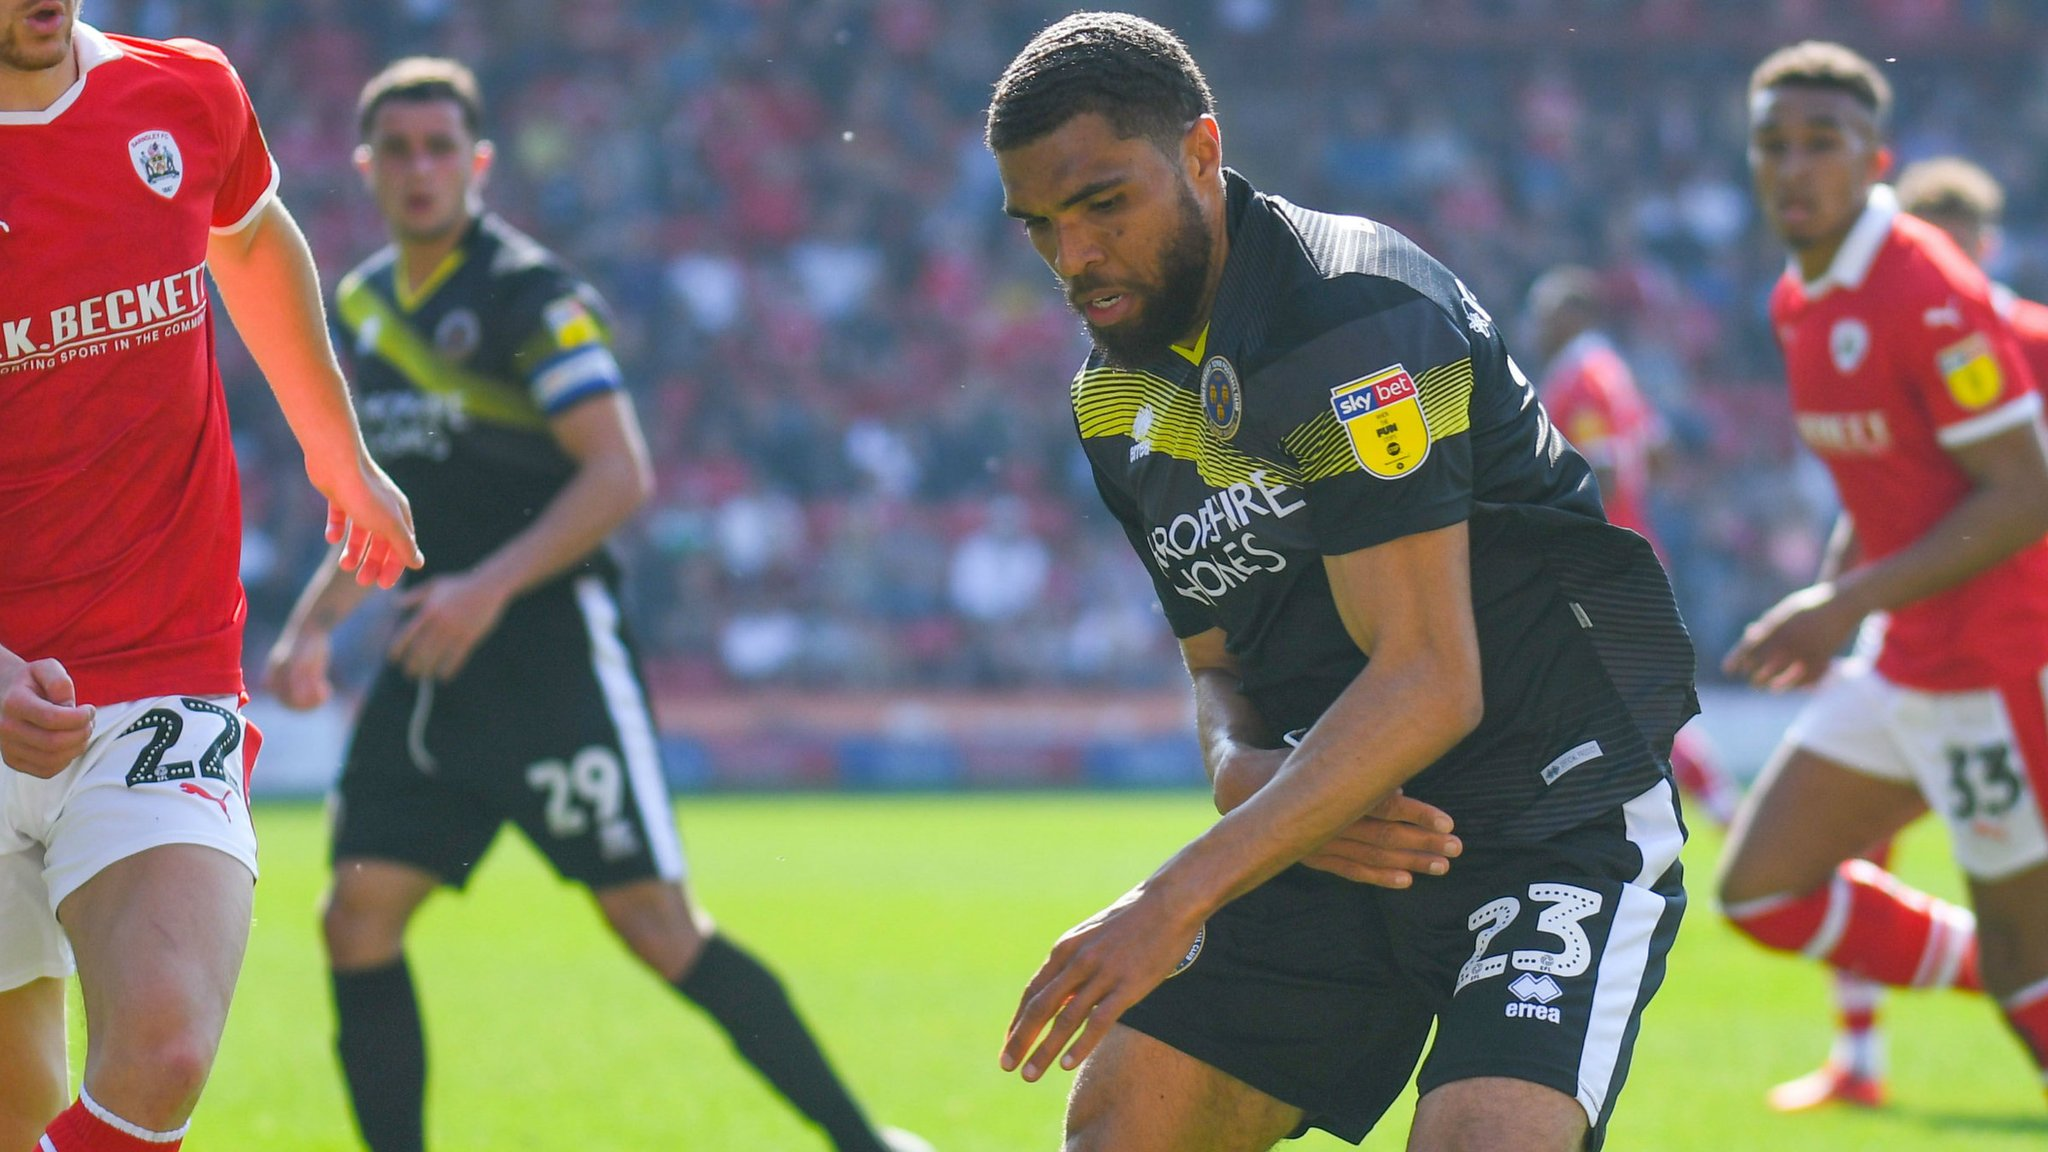 Scott Golbourne: Shrewsbury Town defender signs new two-year contract